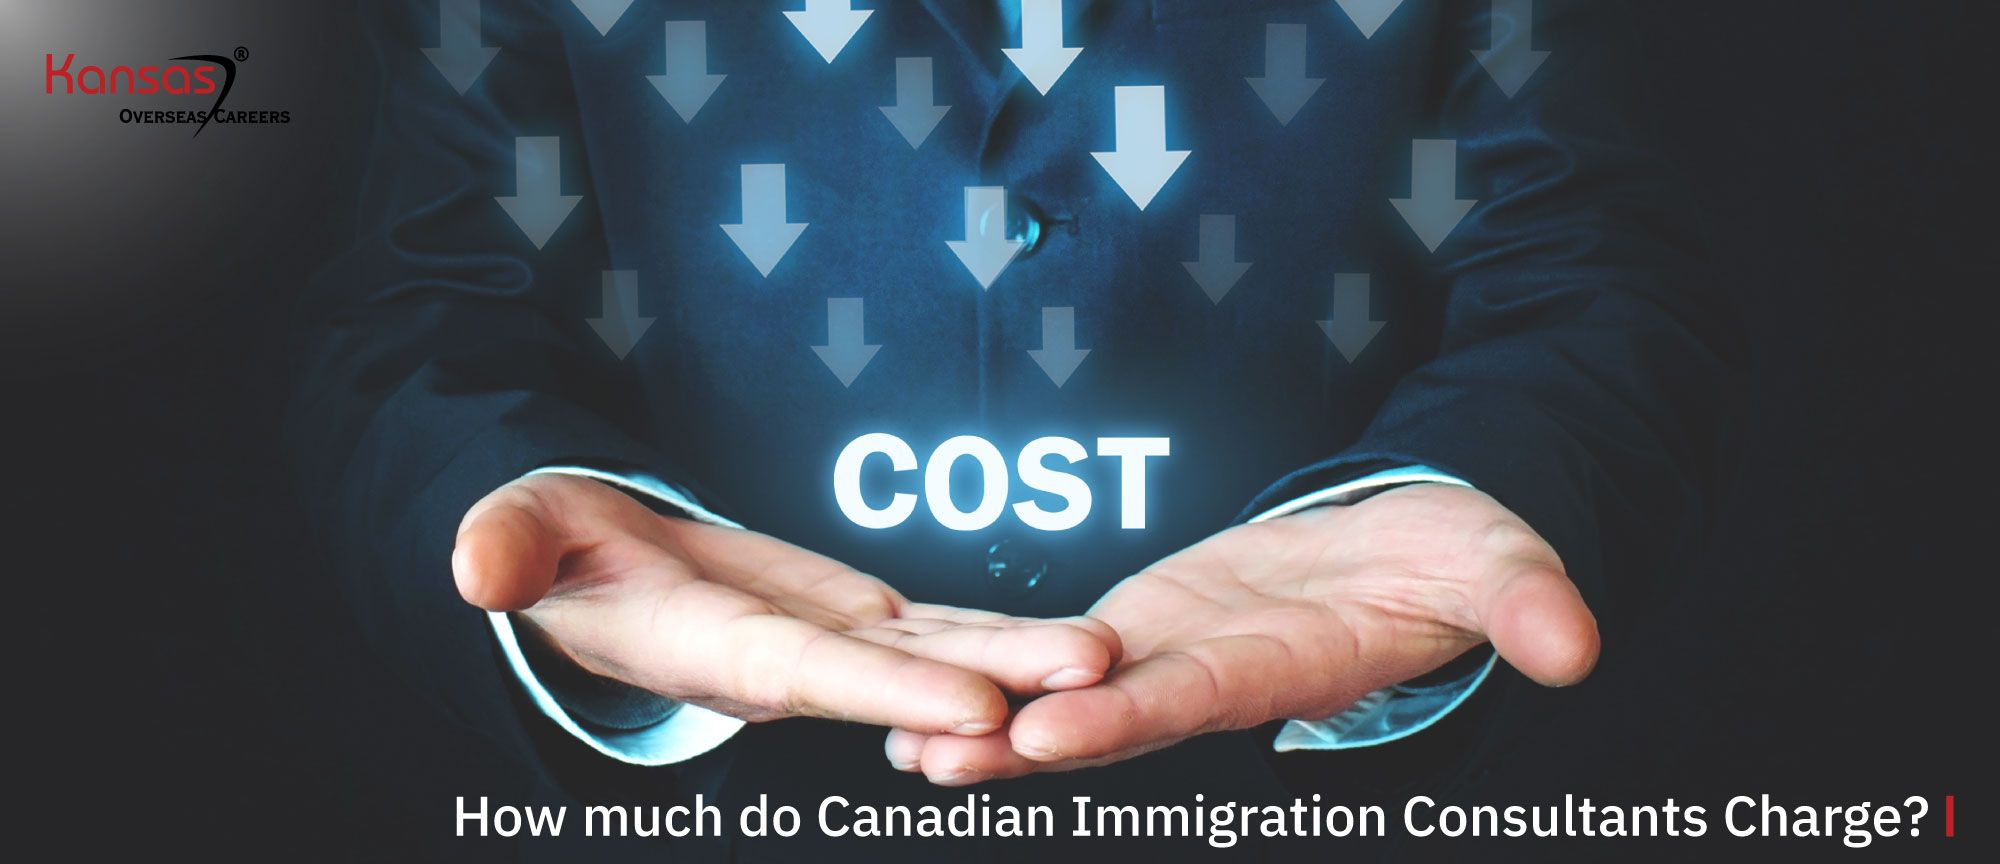 How-much-do-Canadian-Immigration-Consultants-Charge-